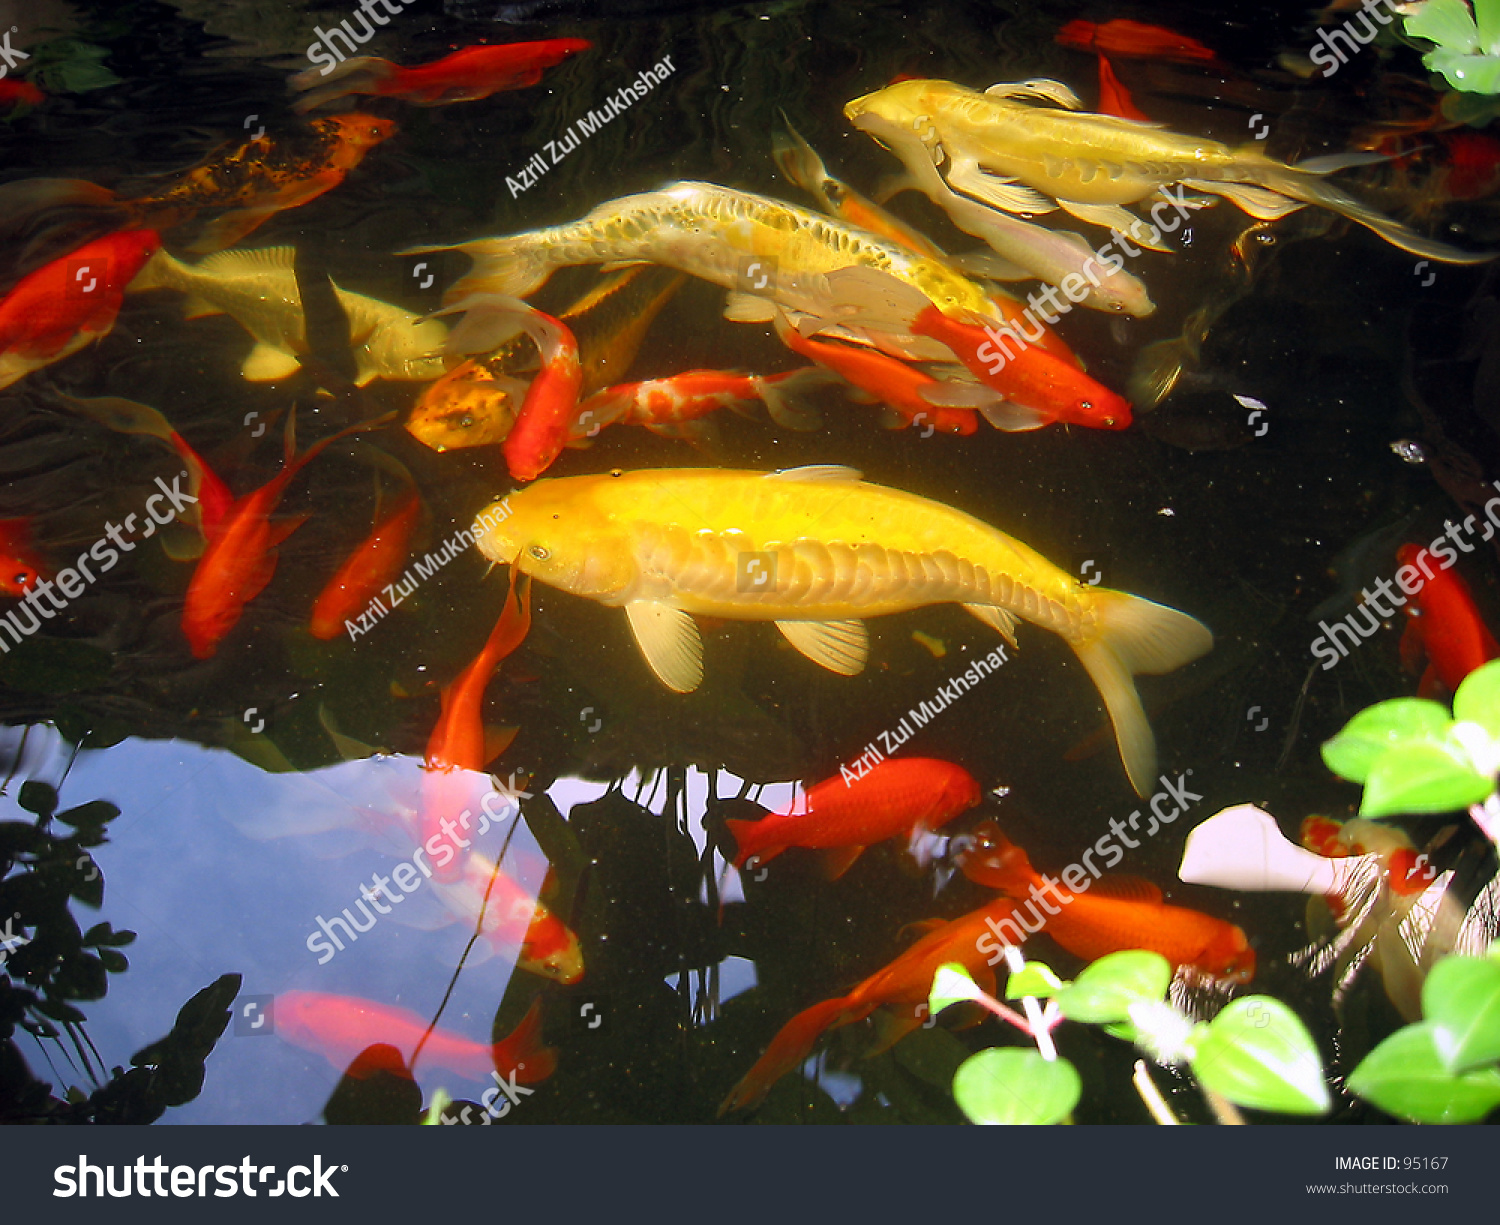 Tropical koi fish stock photo 95167 shutterstock for Exotic koi fish